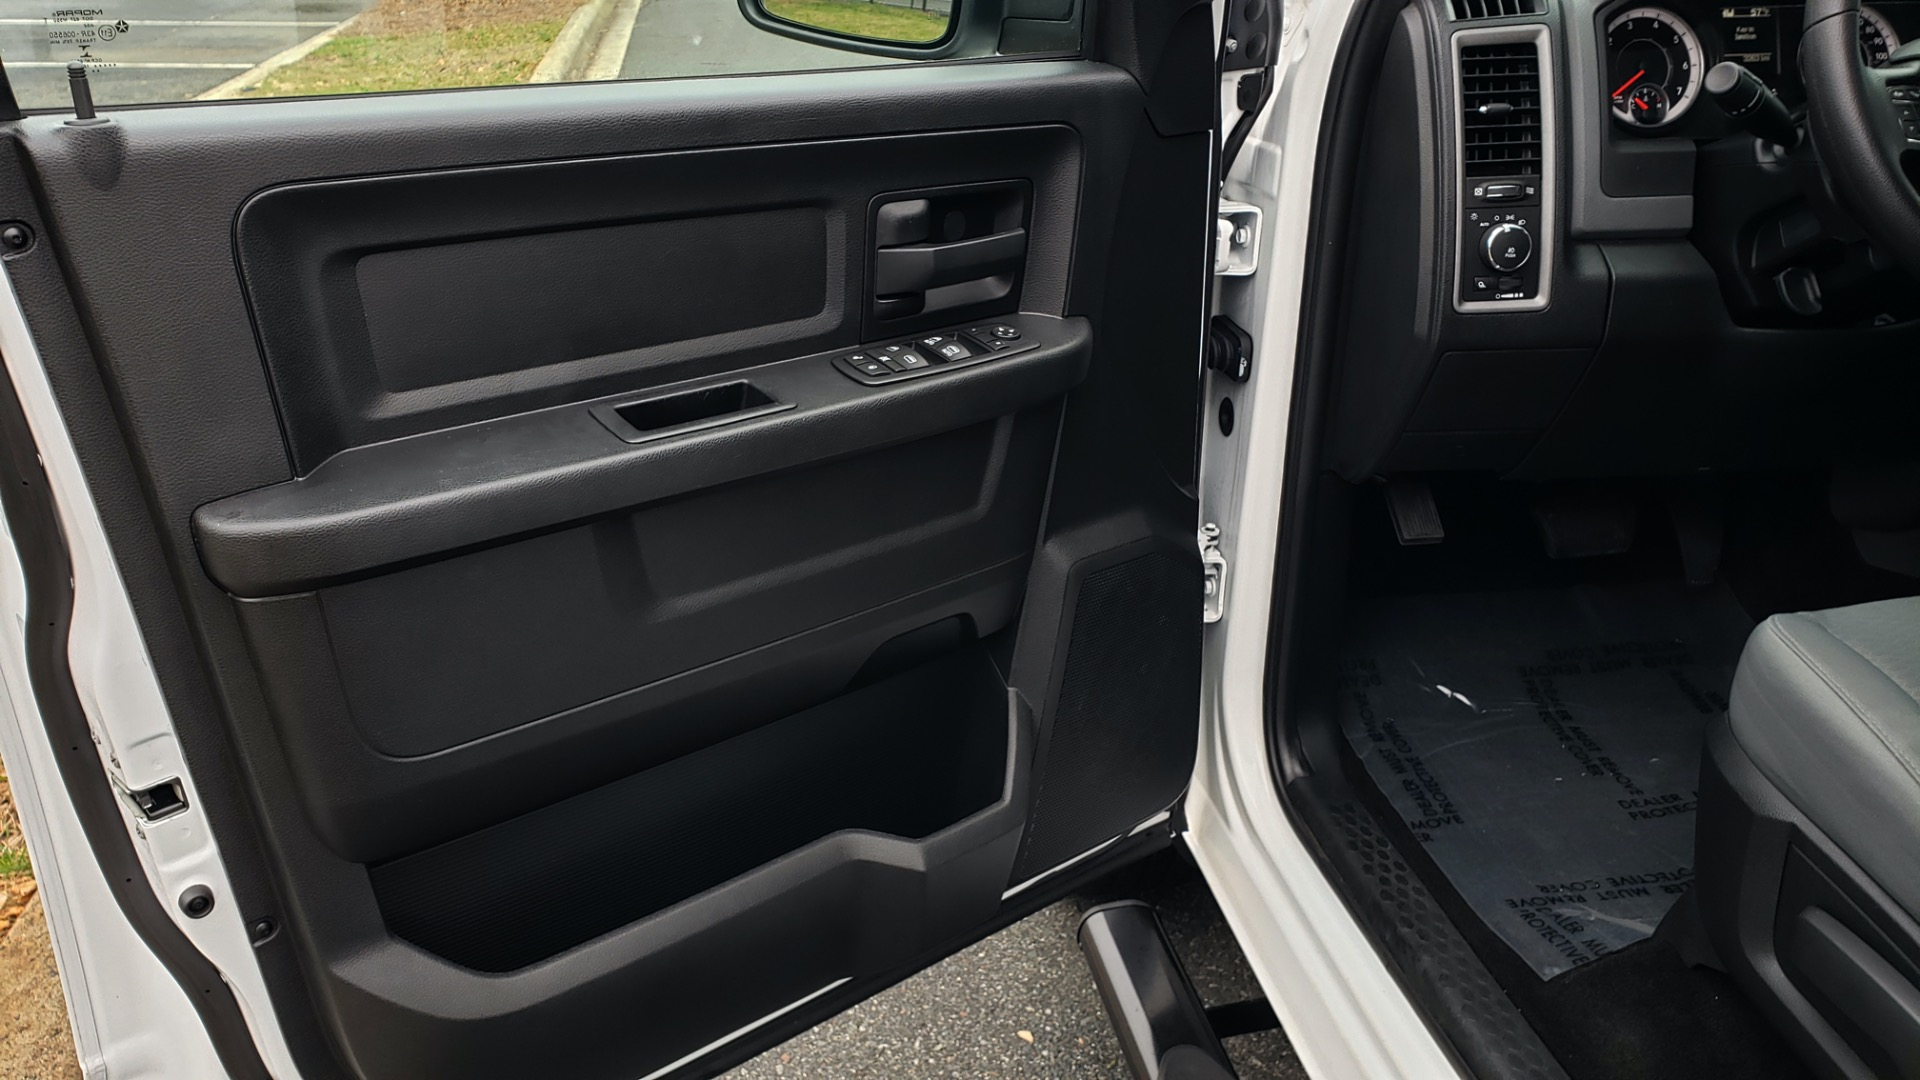 Used 2016 Ram 1500 EXPRESS / CREW CAB / 4X4 / BED LINER / 32-GALLON TANK for sale Sold at Formula Imports in Charlotte NC 28227 31